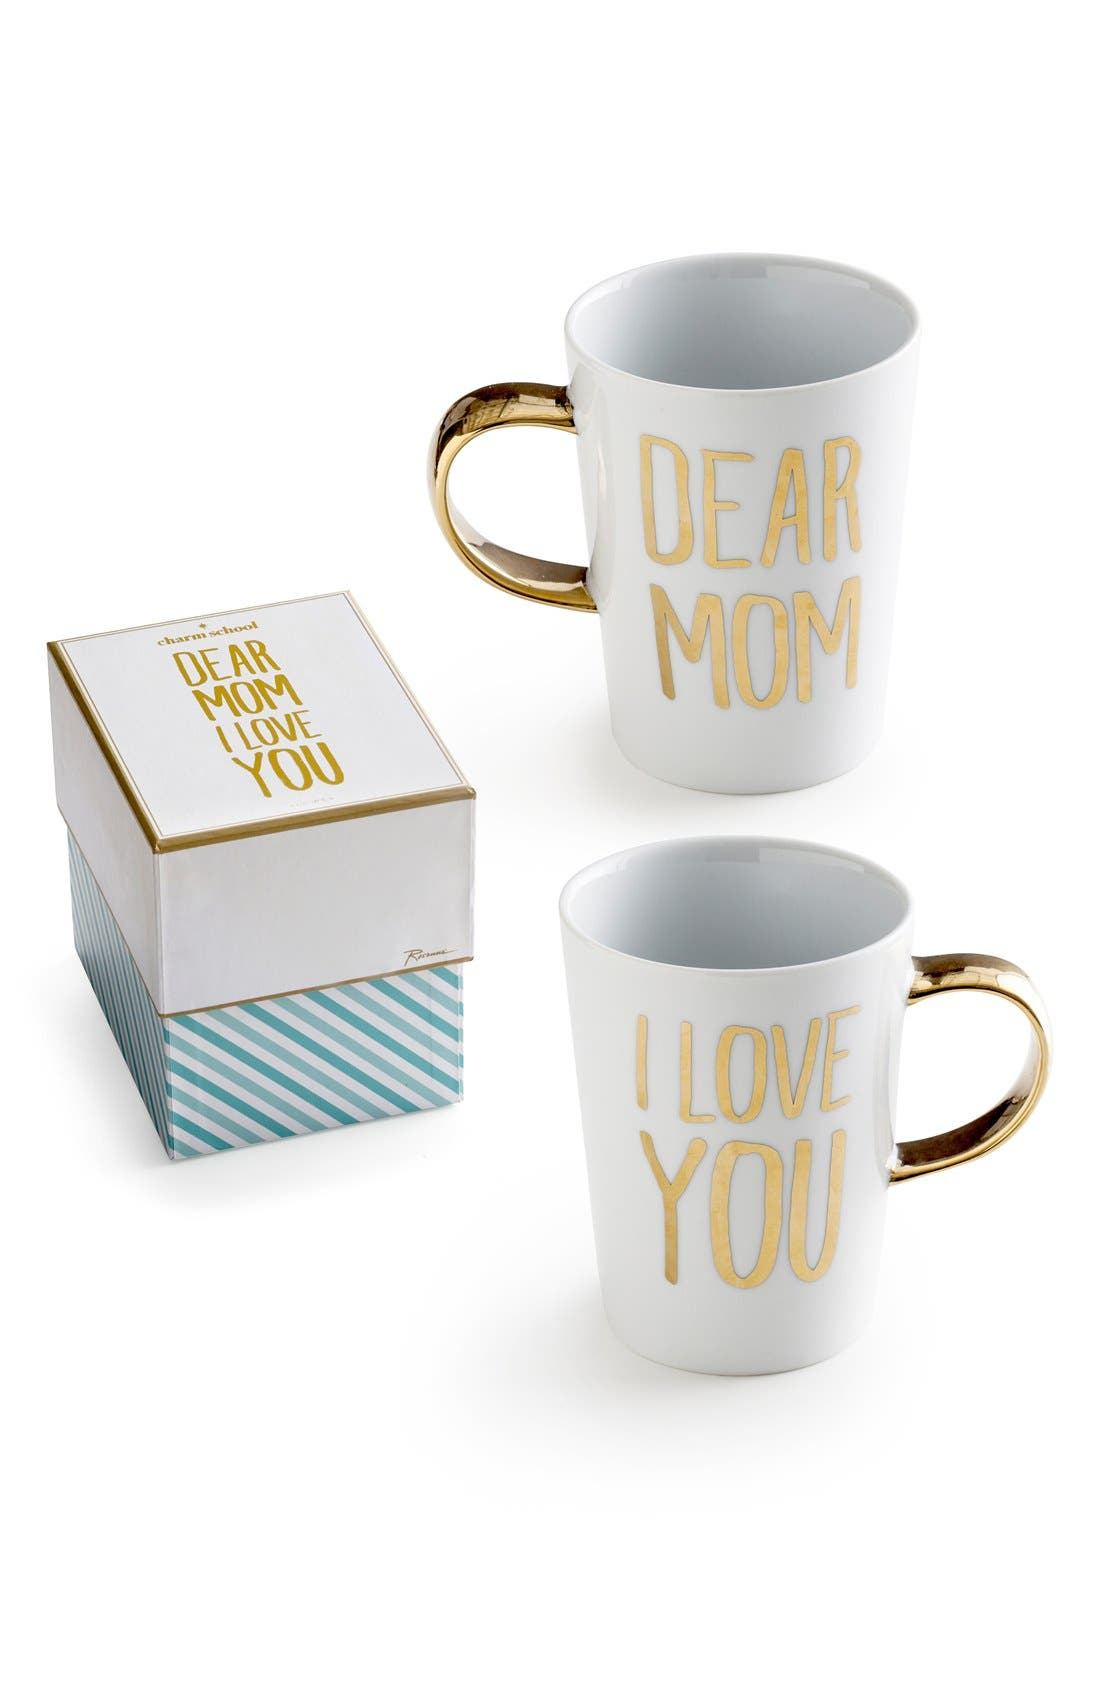 'Dear Mom I Love You' Porcelain Coffee Mug,                             Main thumbnail 1, color,                             White/ Gold